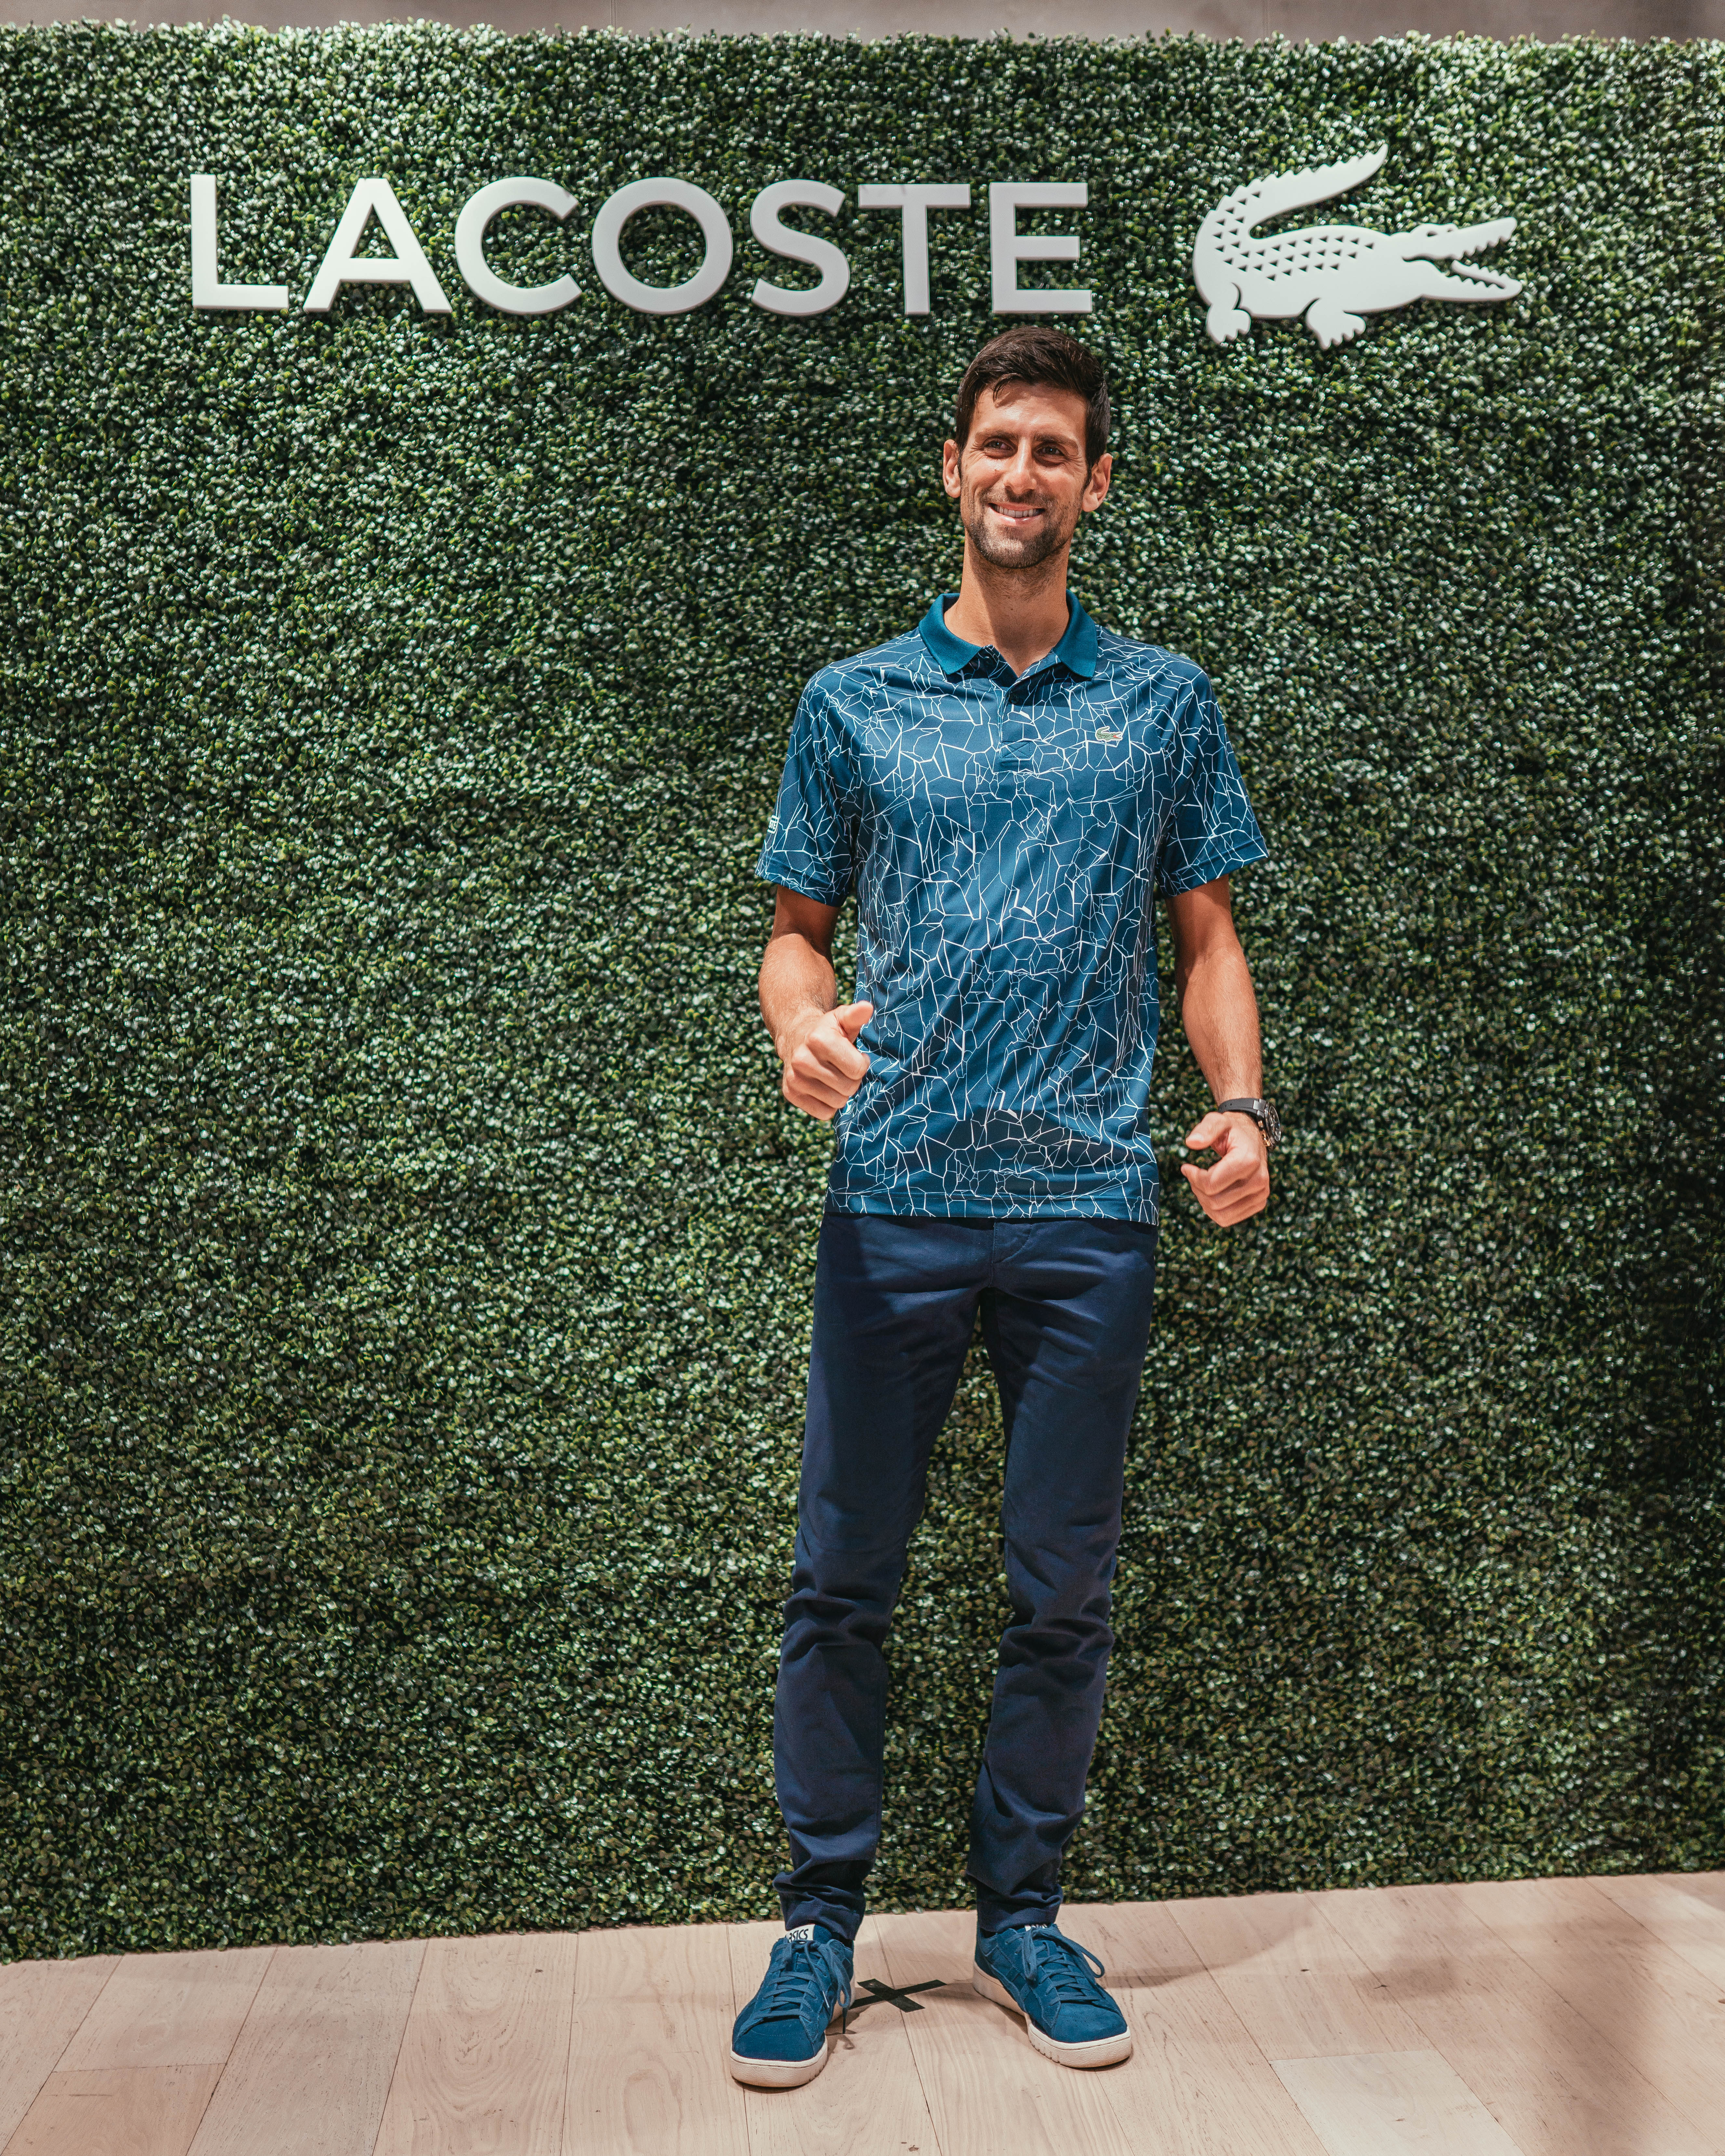 Lacoste & Novak Djokovic Celebrate New Fall/Winter 2018 Collection